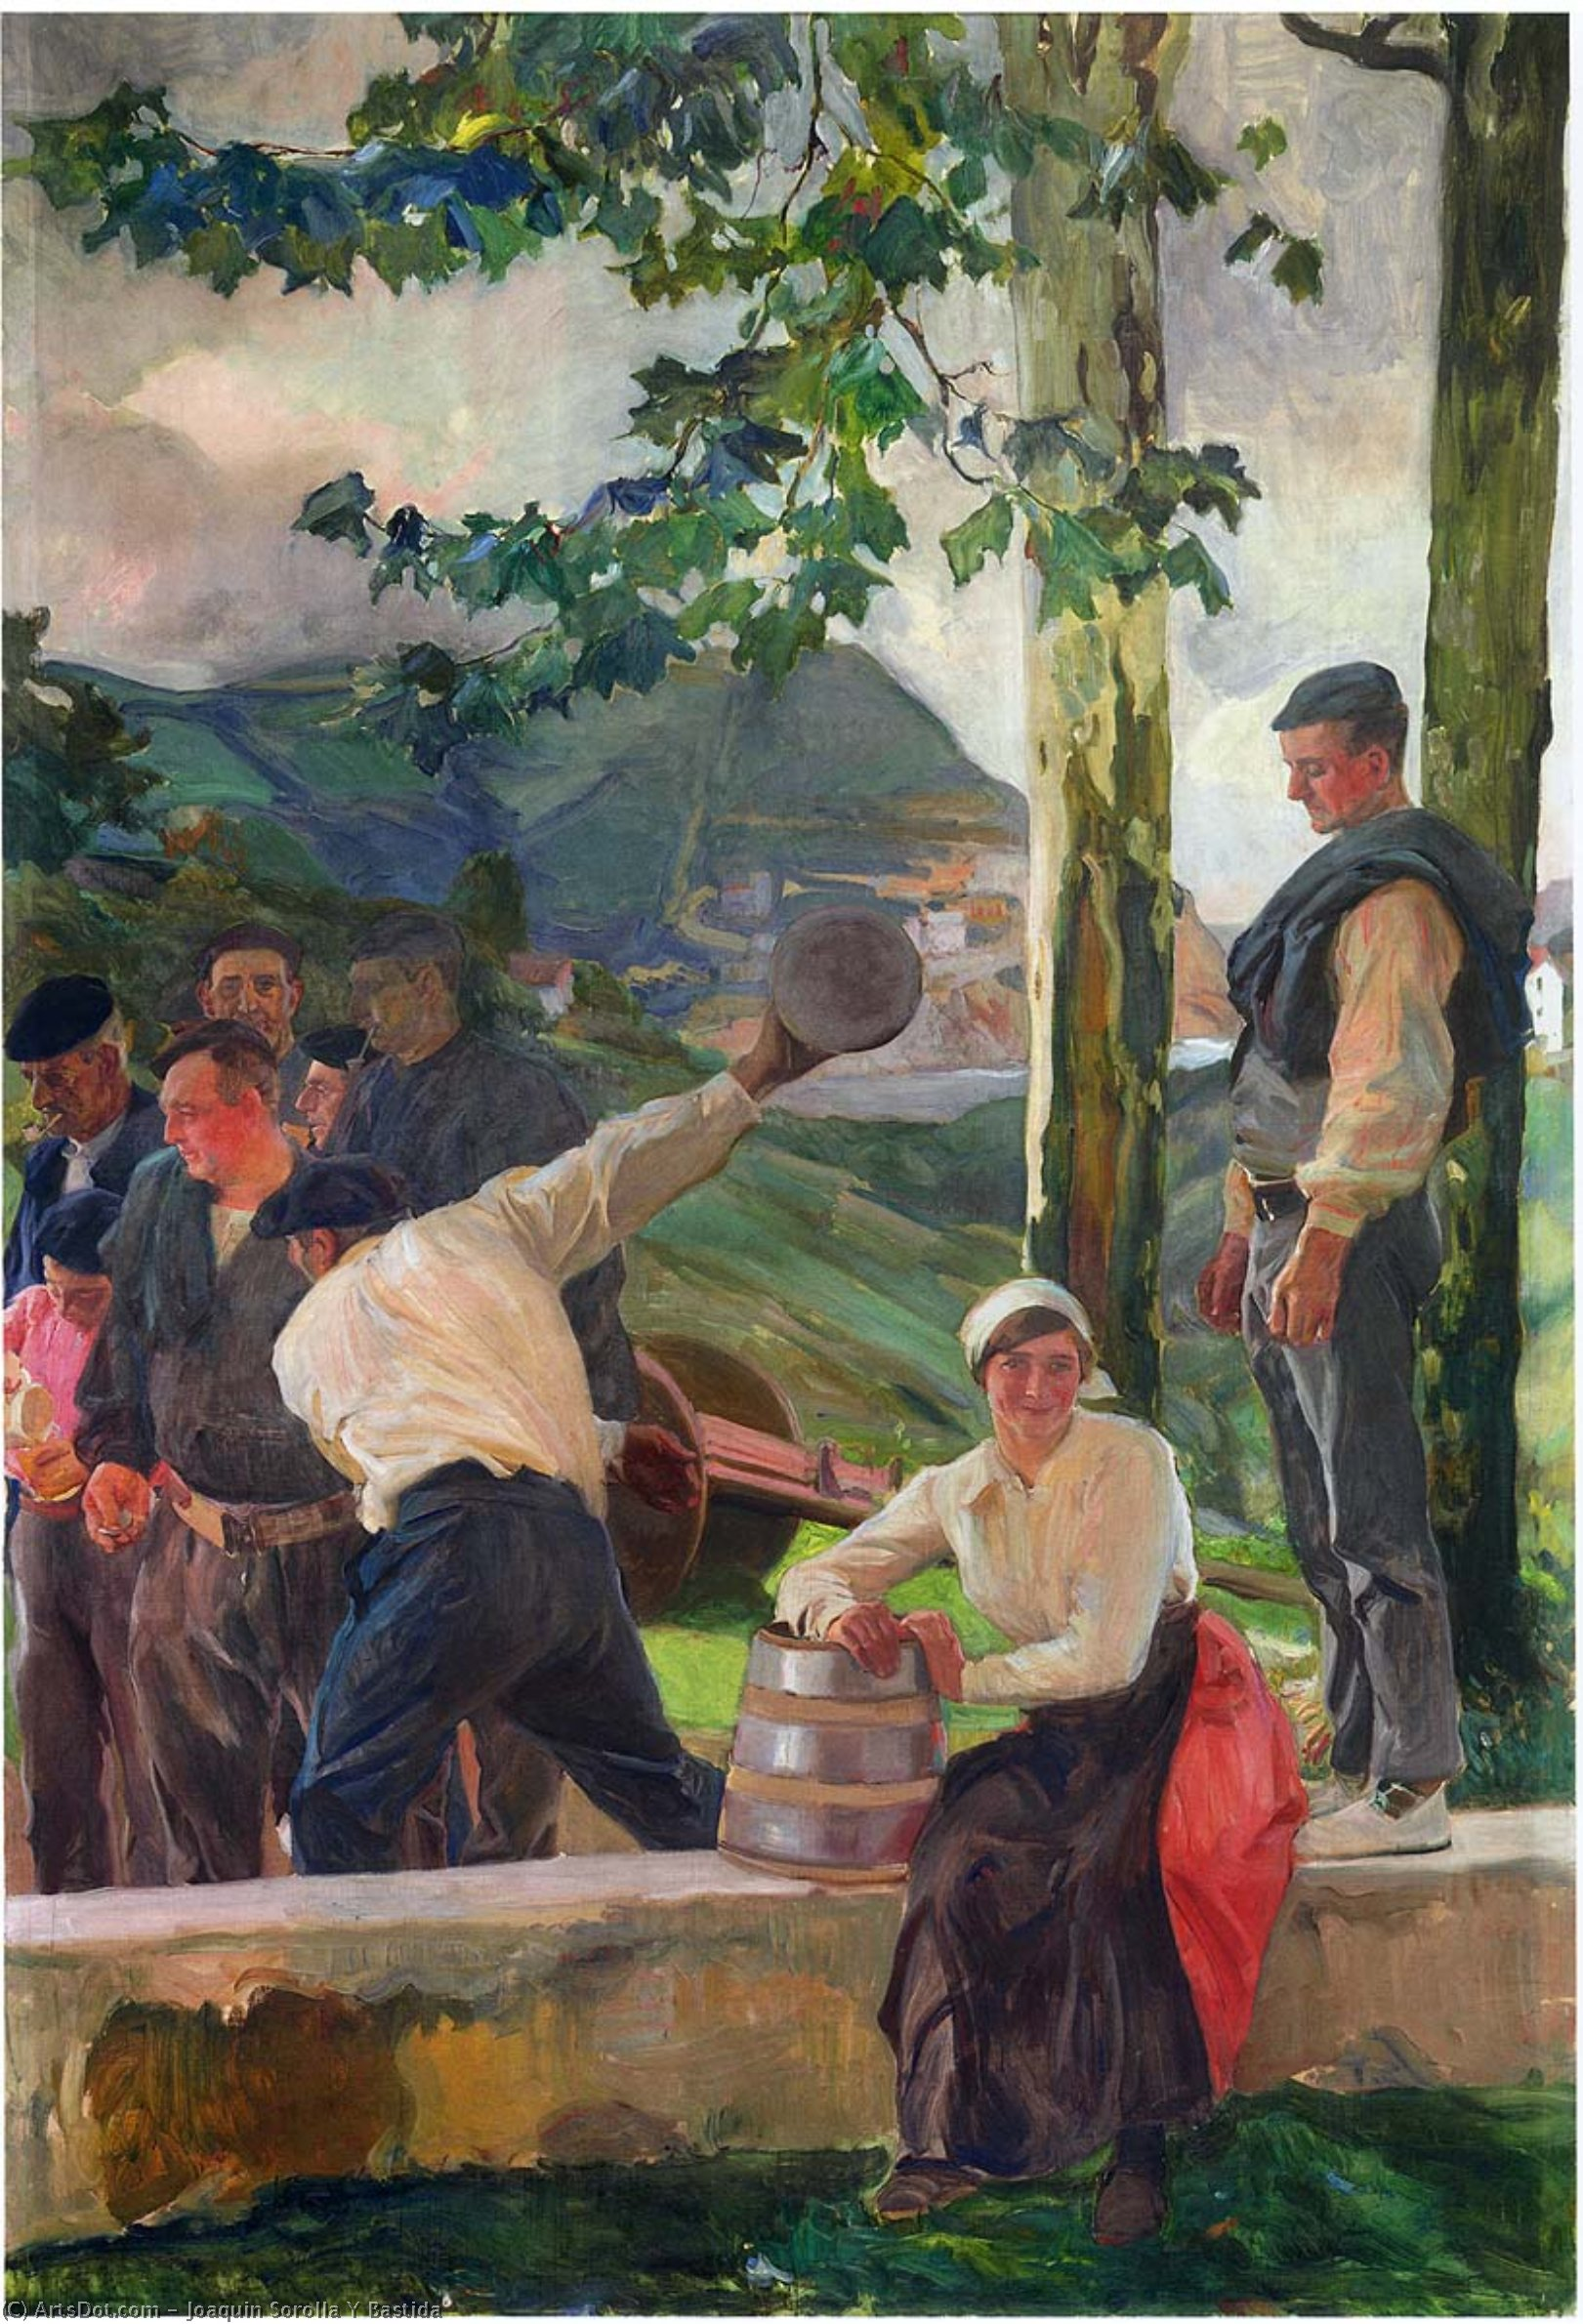 Game of Skittles, Oil On Canvas by Joaquin Sorolla Y Bastida (1863-1923, Spain)